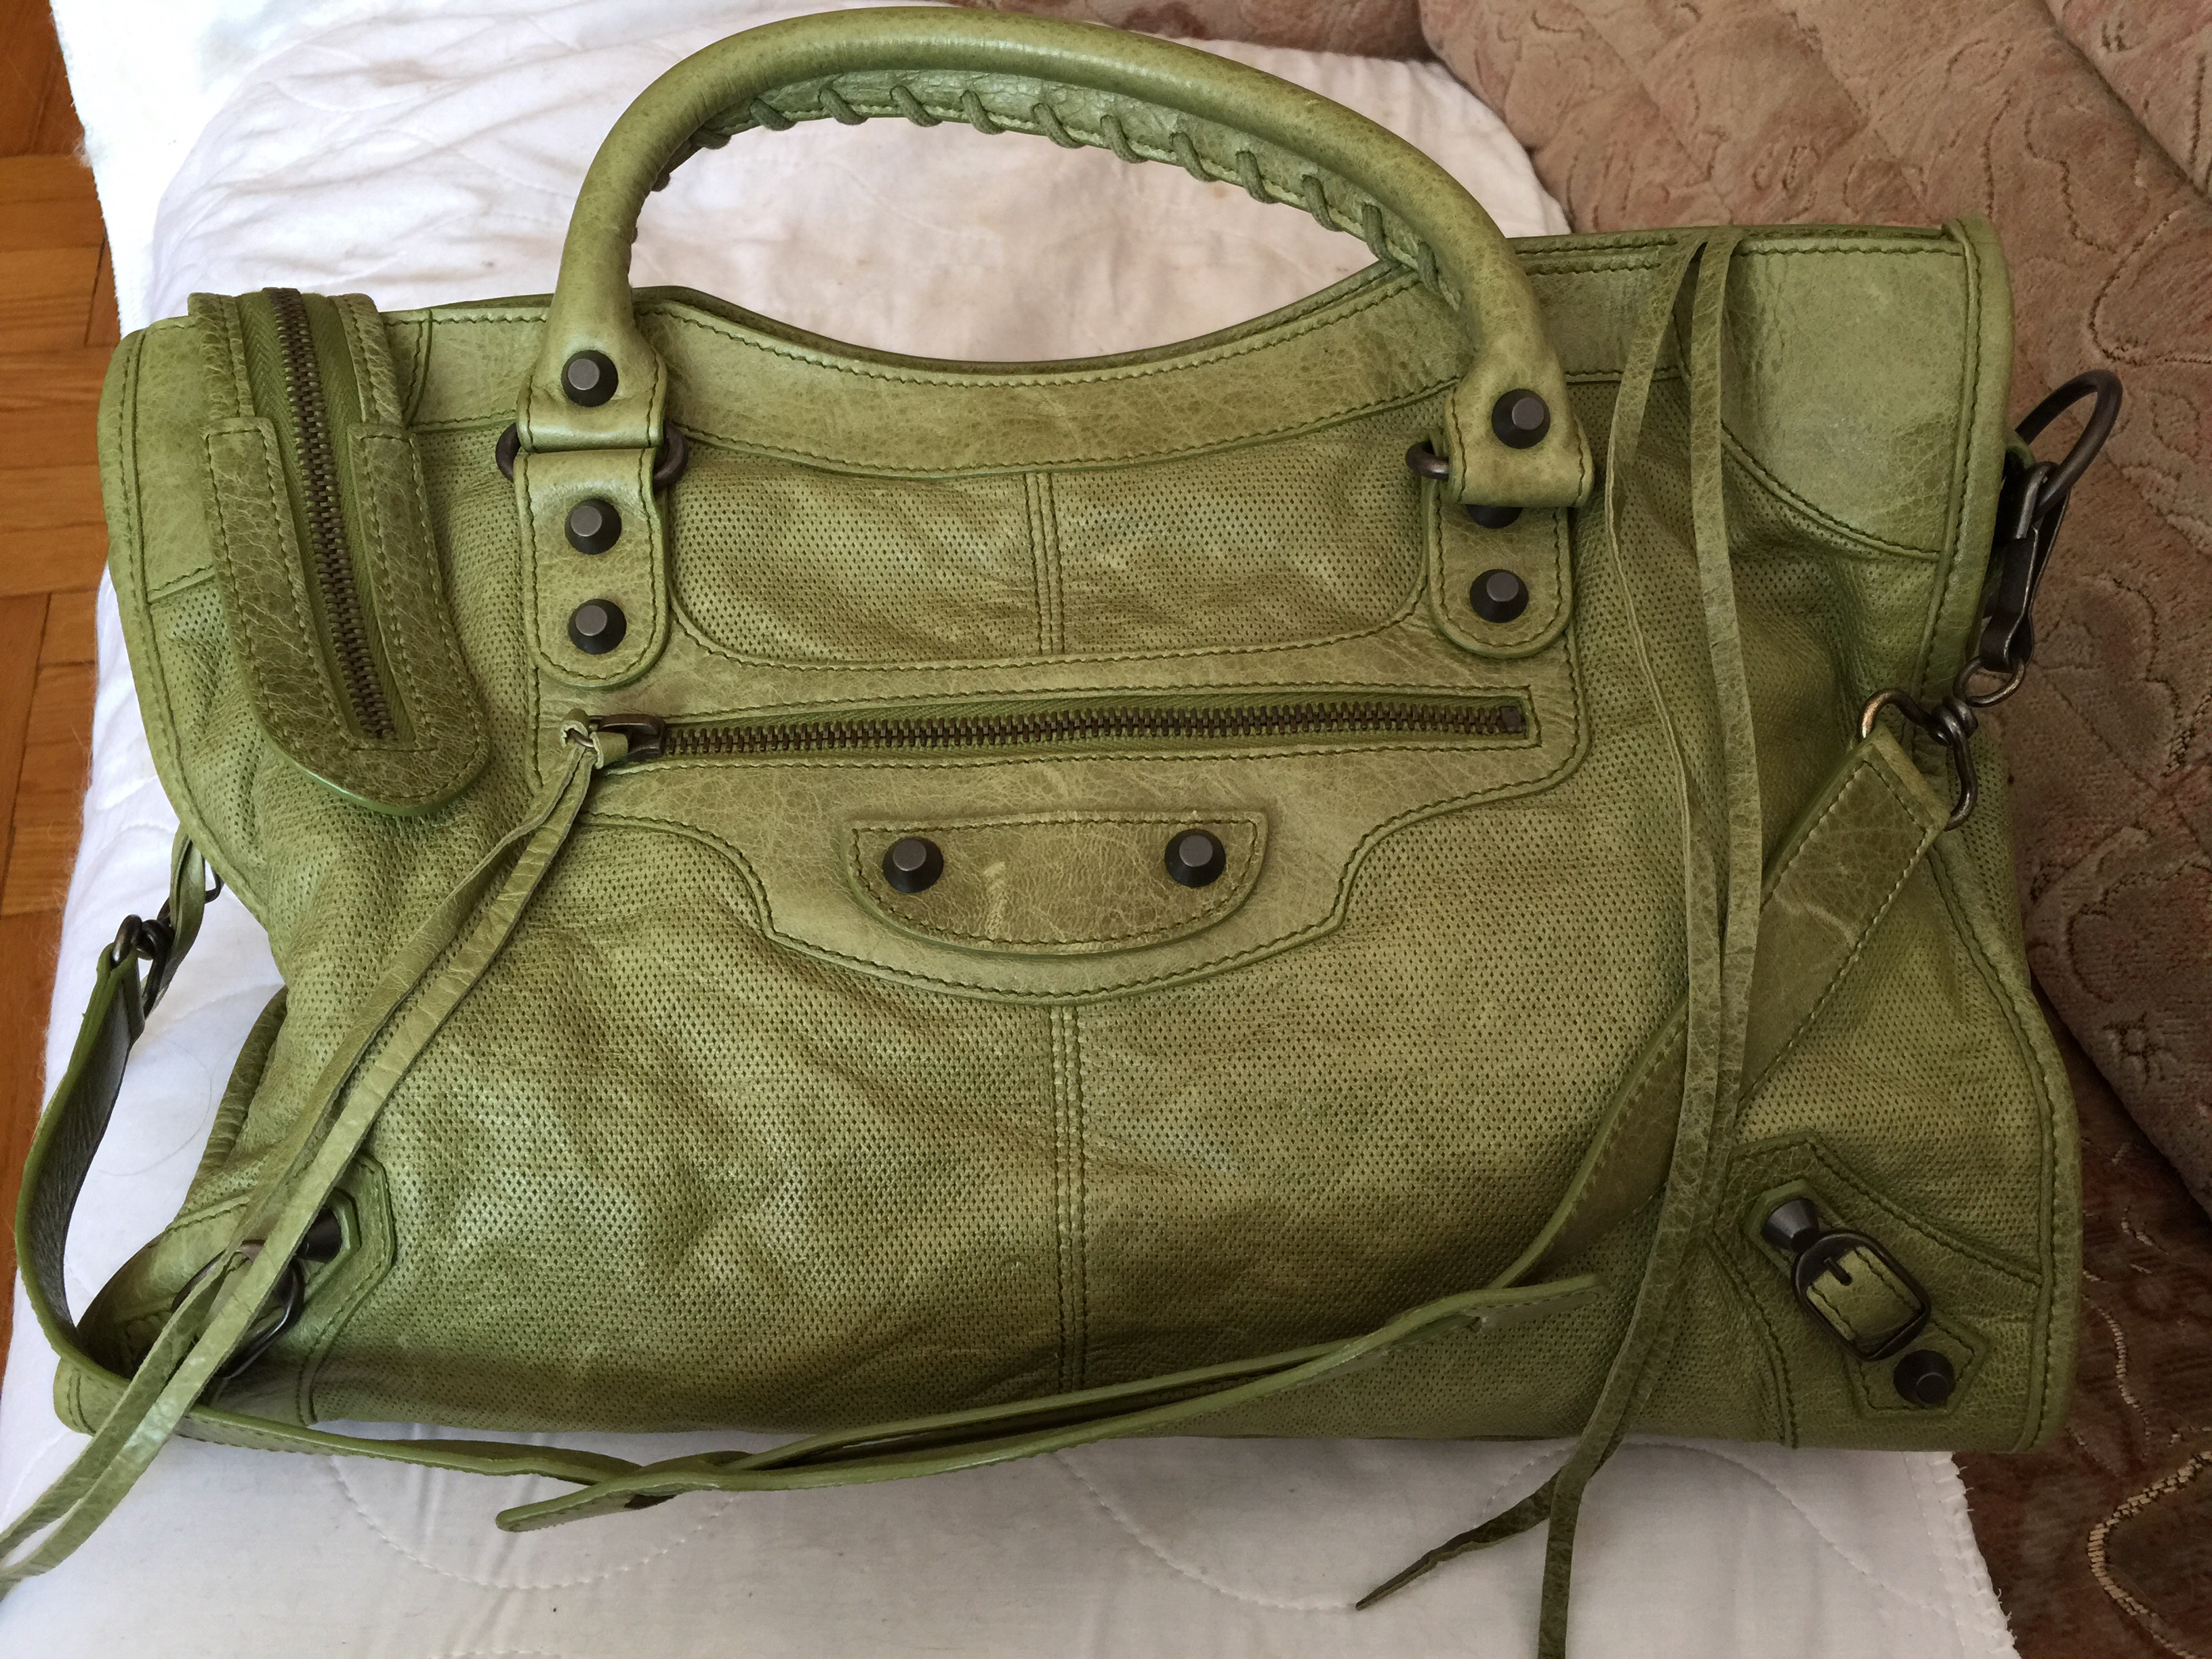 a23cb1bc6099 Forest Green Balenciaga City bag in perforated lambskin leather ...